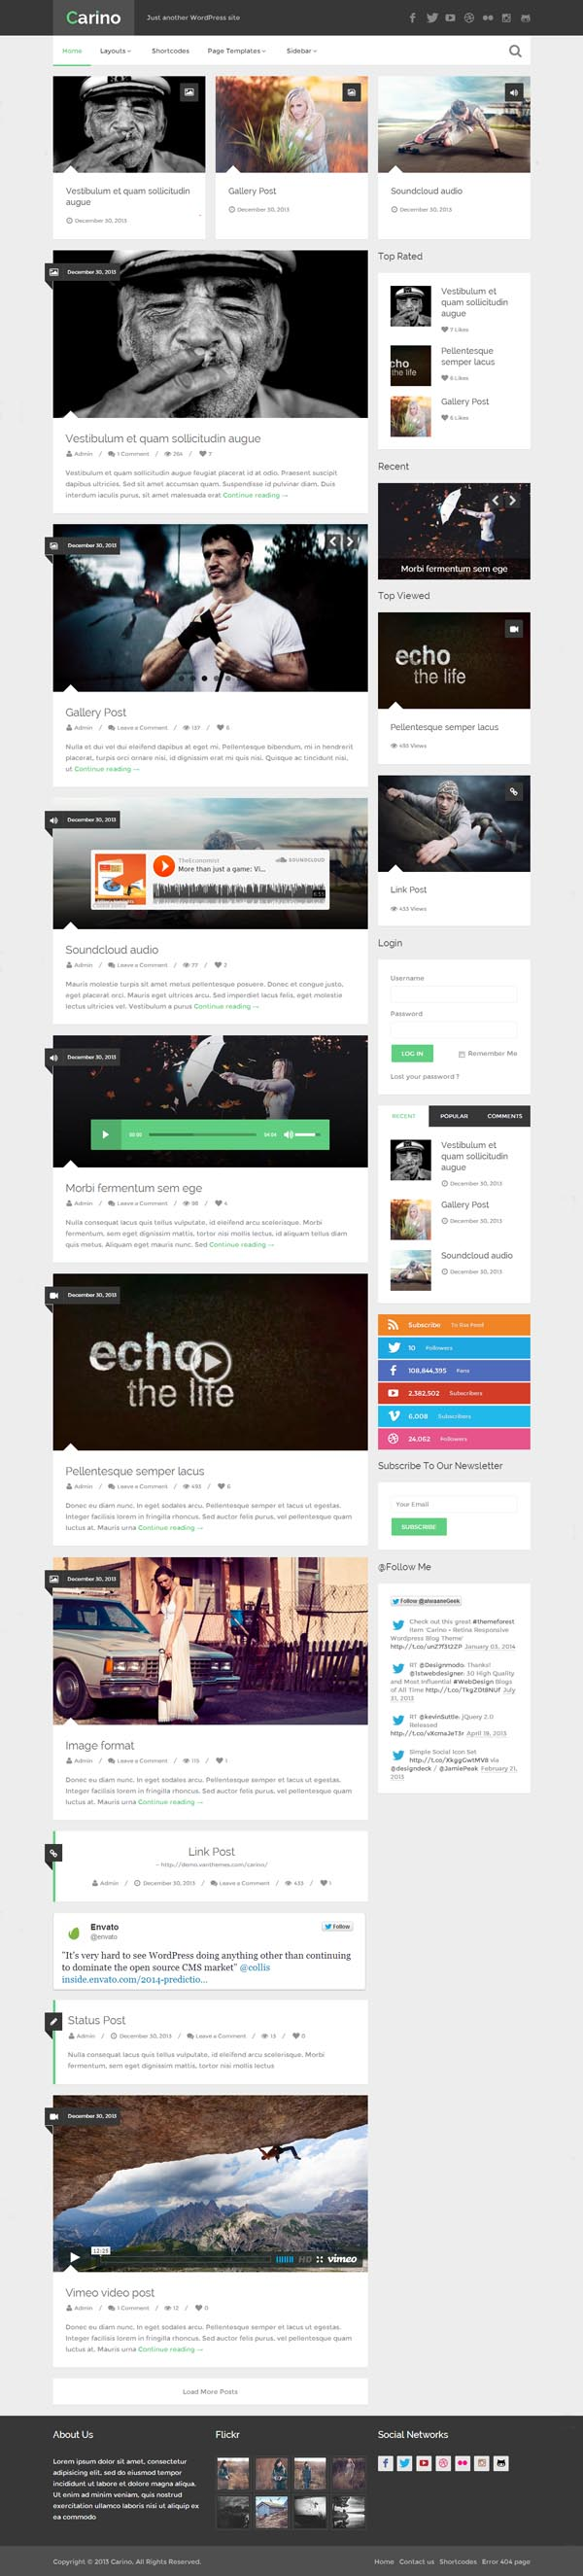 Carino - Retina Responsive WordPress Blog Theme